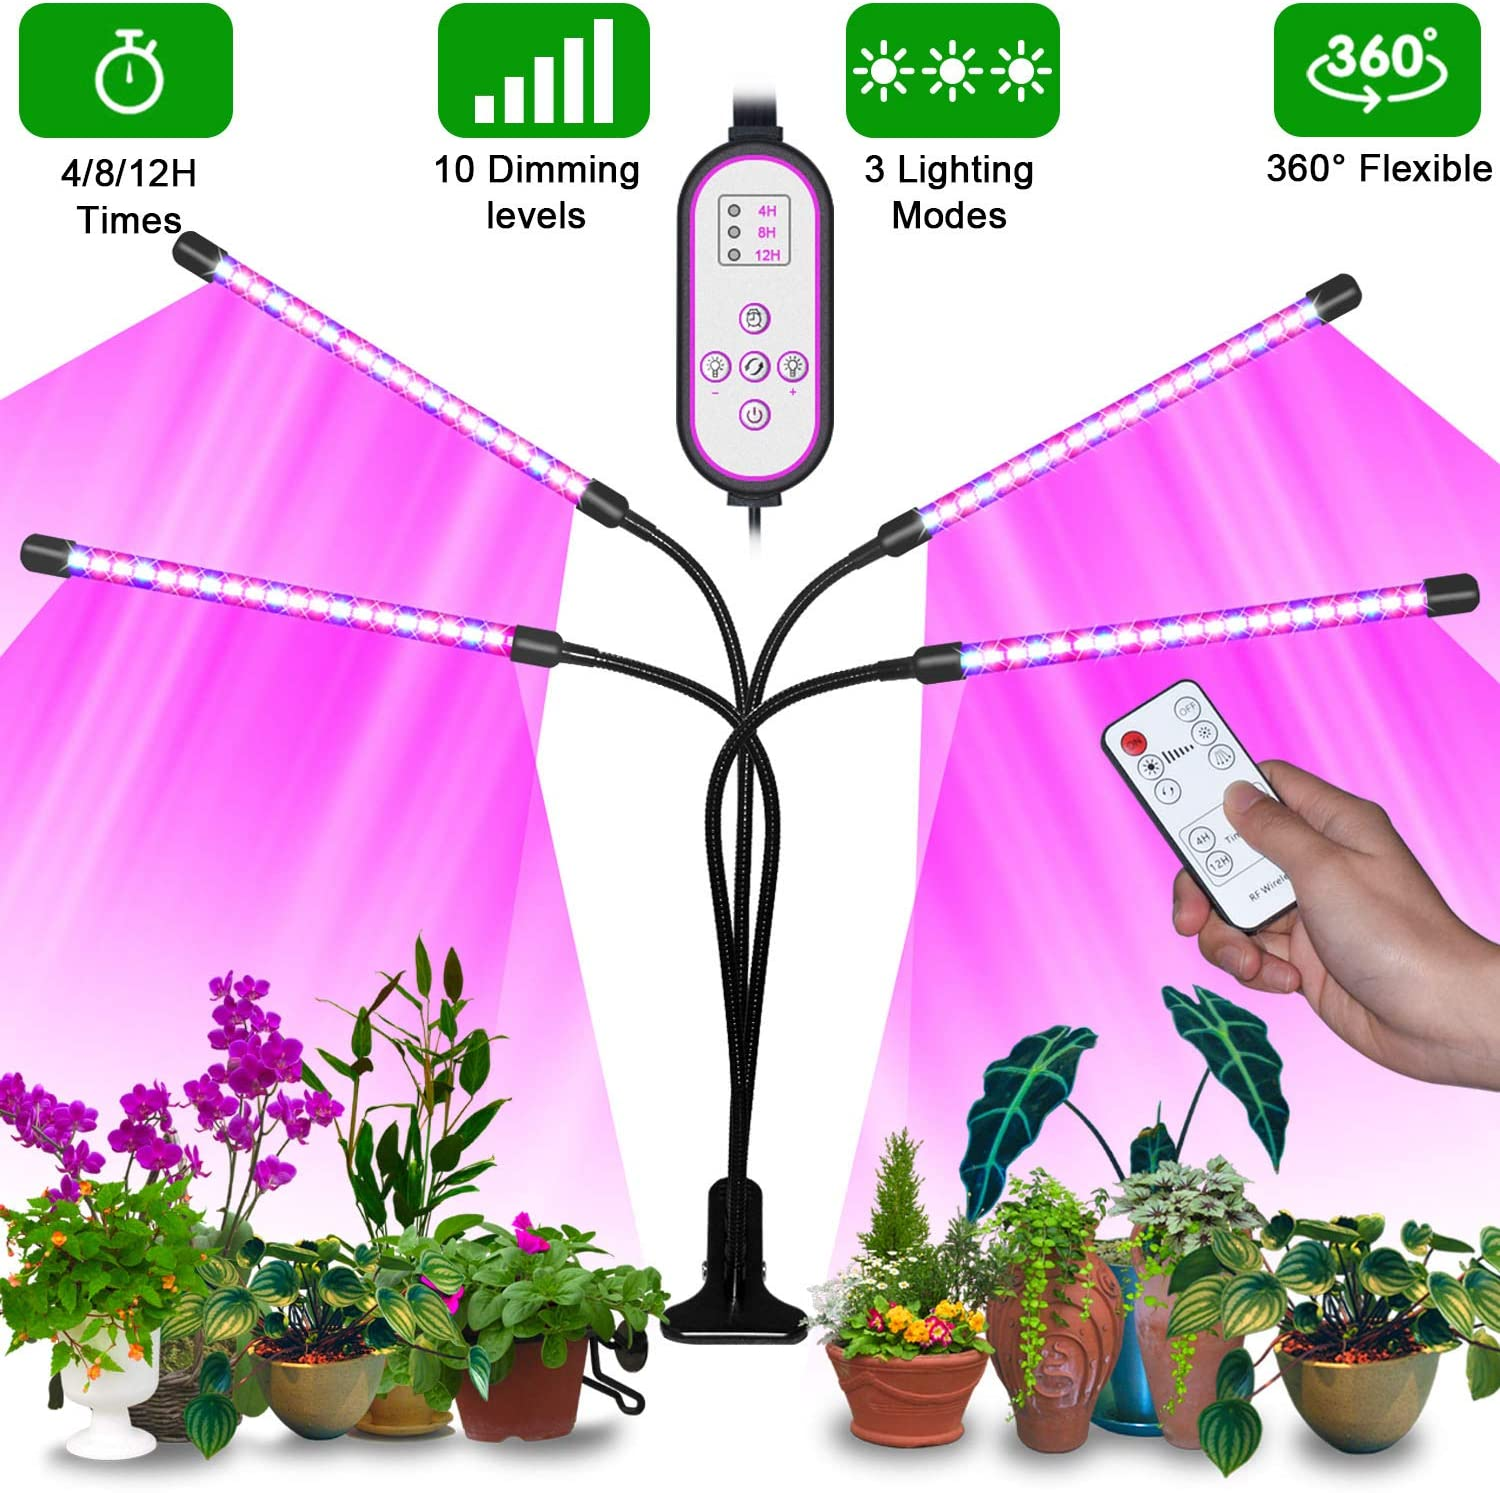 LED Grow Light for Indoor Plants Full Spectrum 80W Timing 80 LEDs Plant Lights 10 Dimmable Levels Plant Lamp with Red+Blue/Red+Blue+Warm White, 4/8/12H Timer, 3 Modes